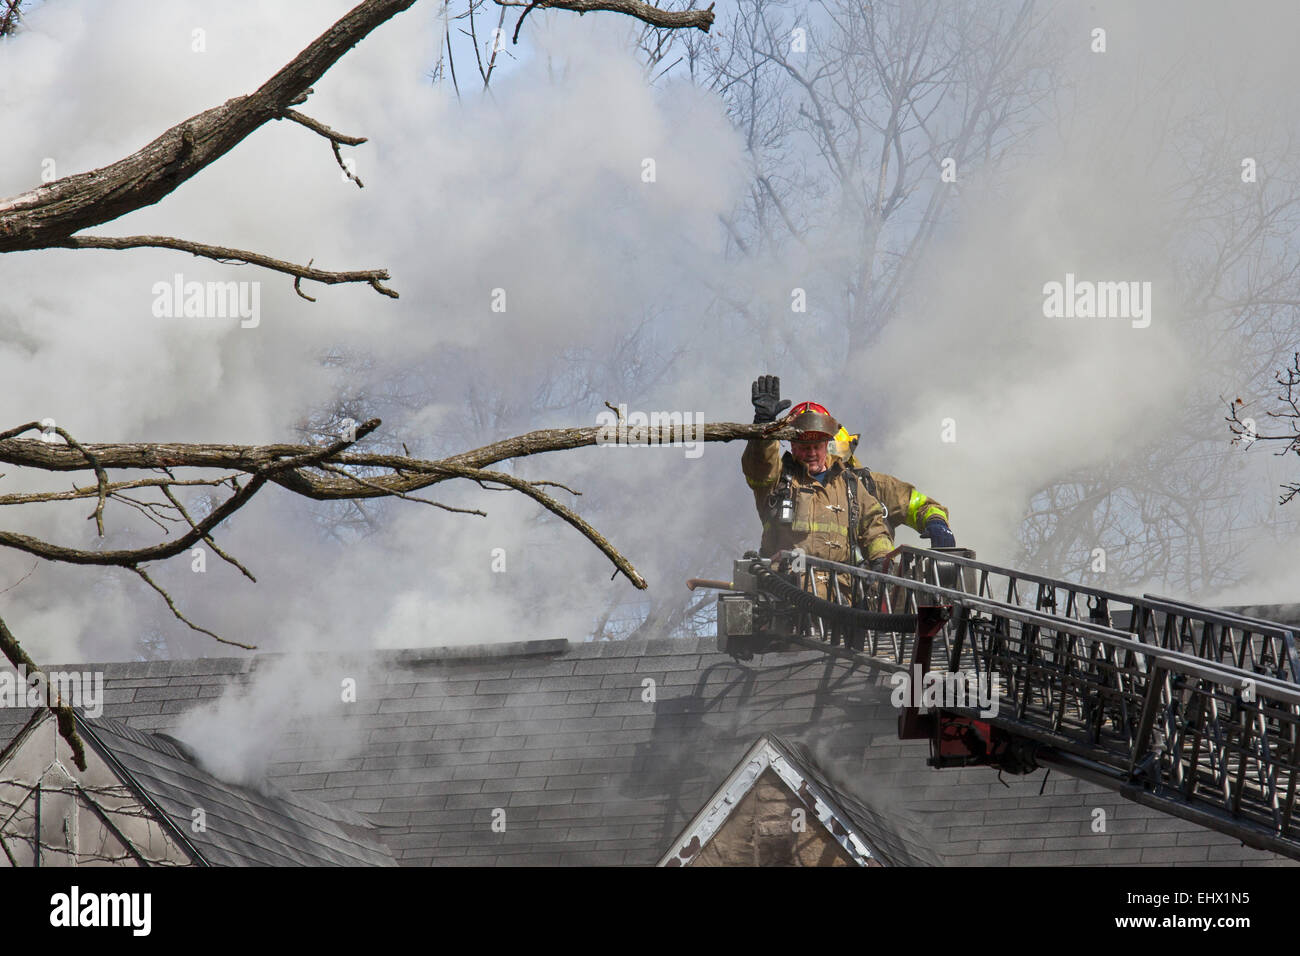 Detroit, Michigan - Firefighters battle a fire which destroyed a vacant home in Detroit's Morningside neighborhood. - Stock Image